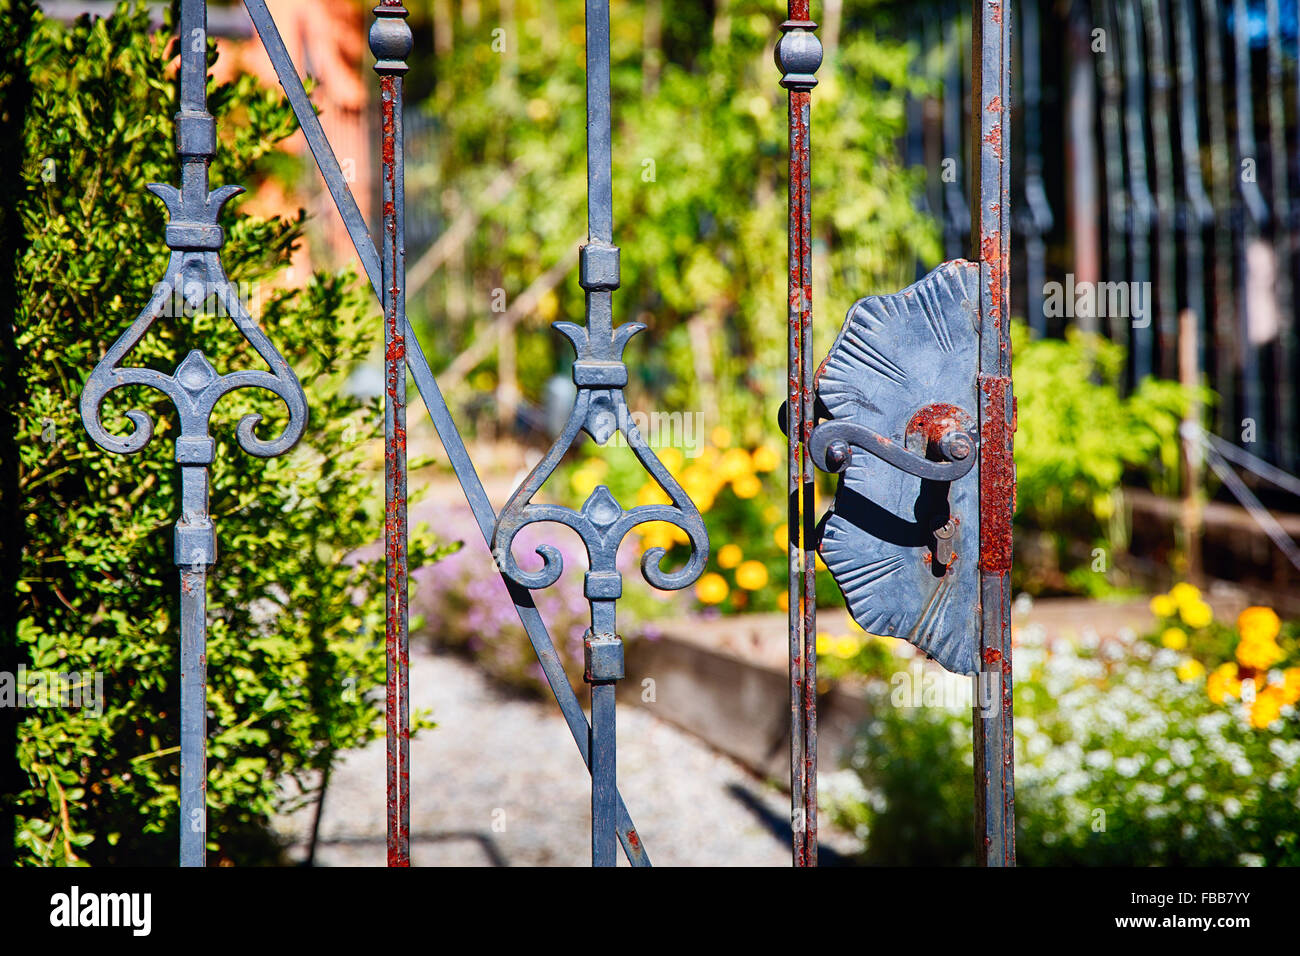 Close Up View of an Old Rusty Wrought Iron Garden Gate, Hamilton, New Jersey - Stock Image